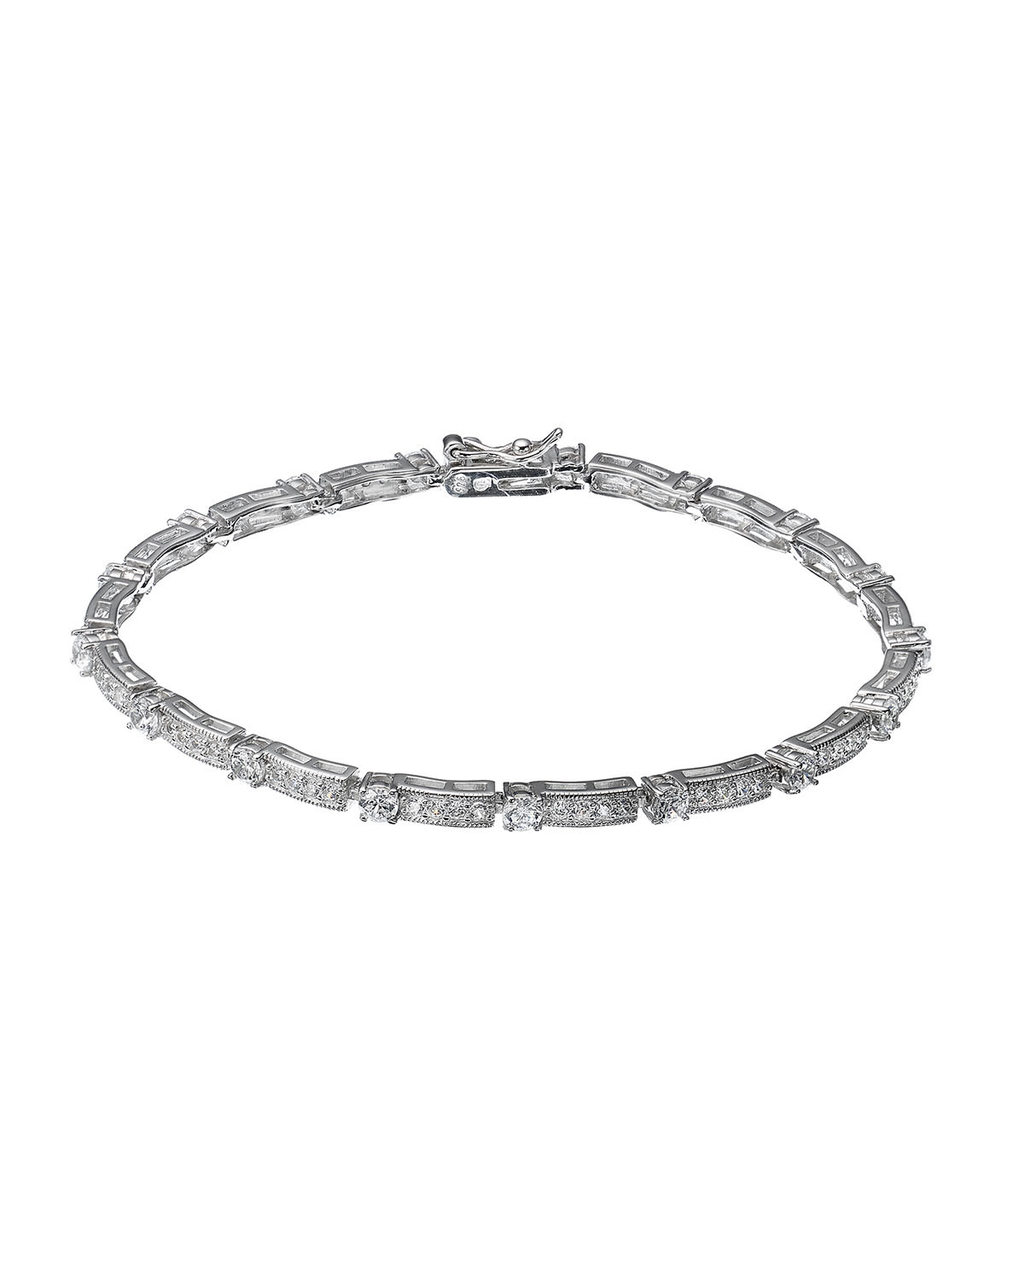 Cubic Zirconia Station Bracelet - predominant colour: silver; occasions: evening, occasion; style: chain; size: standard; material: chain/metal; finish: metallic; season: s/s 2016; wardrobe: event